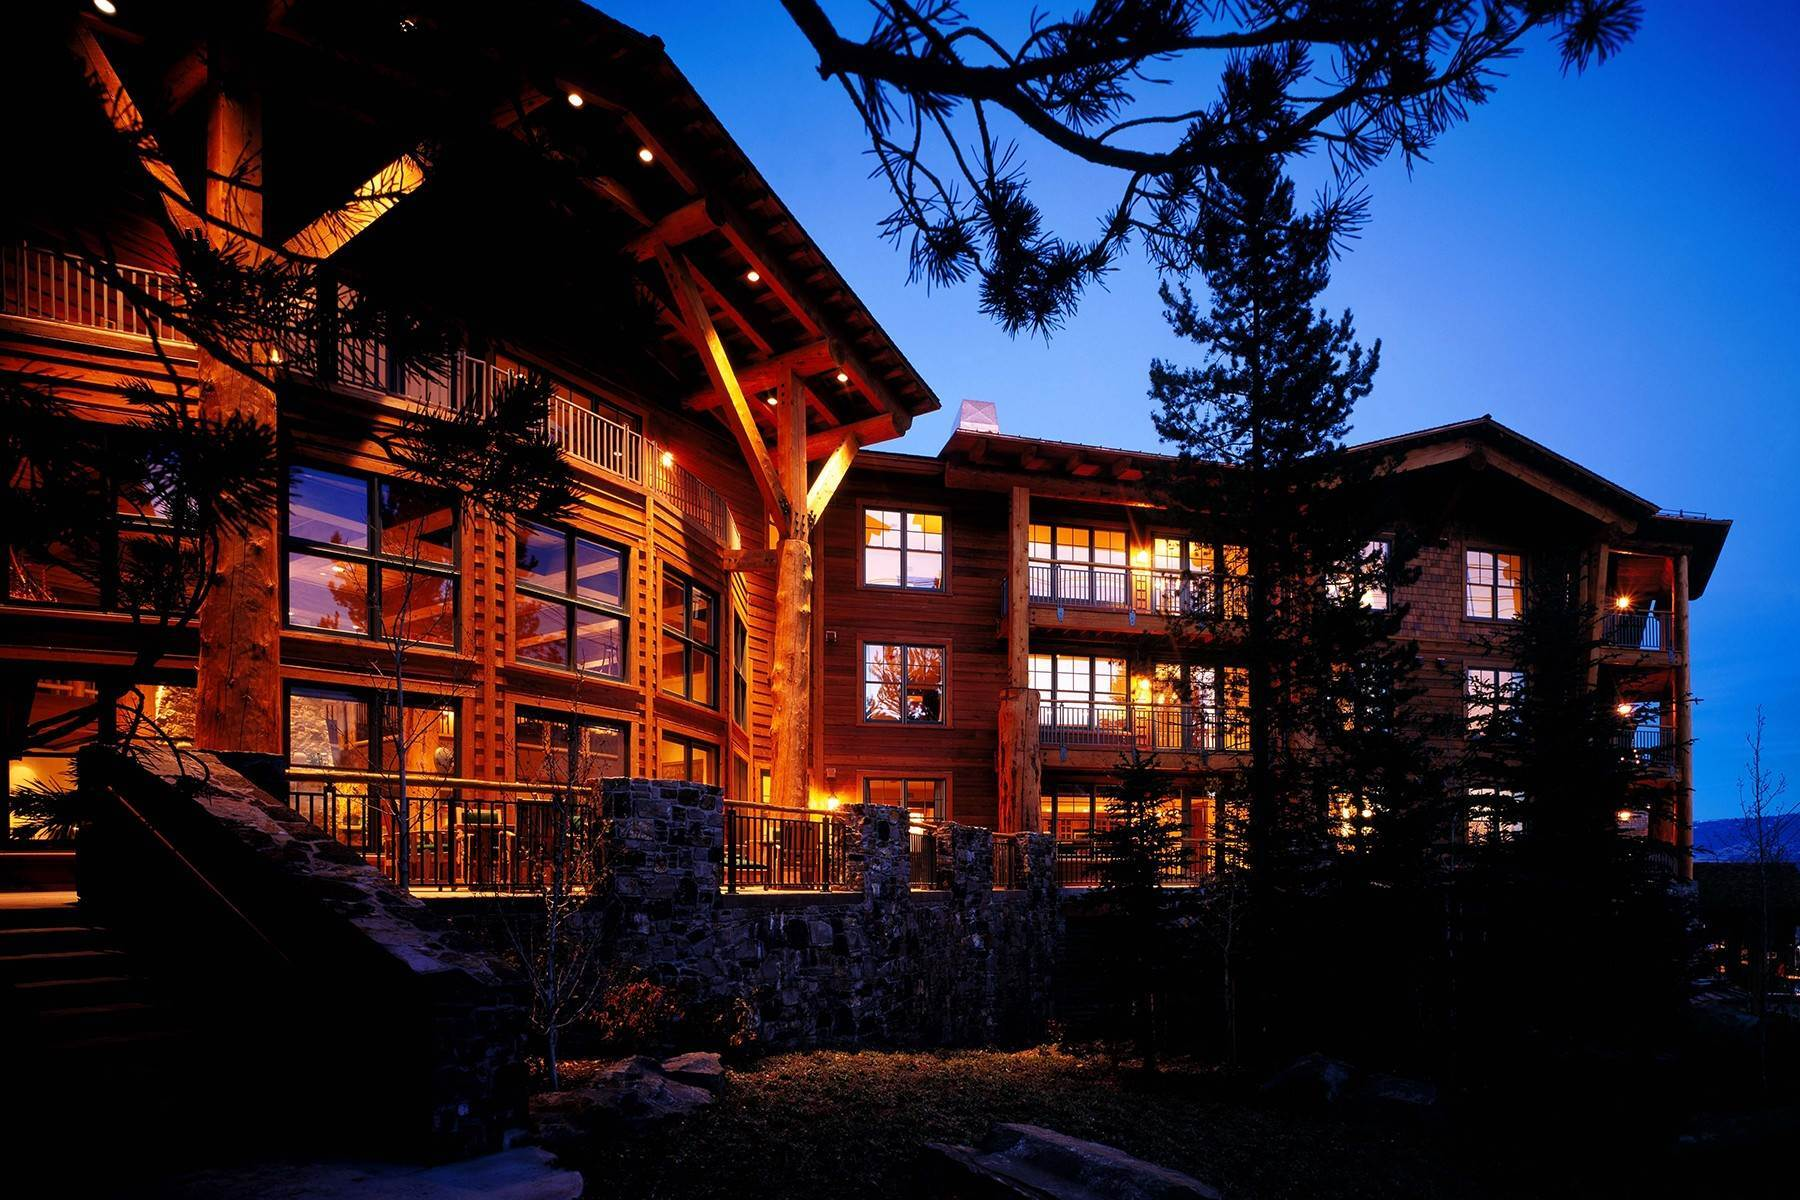 fractional ownership prop for Sale at 3340 W Cody Ln, #202 Teton Village, Wyoming 83025 United States